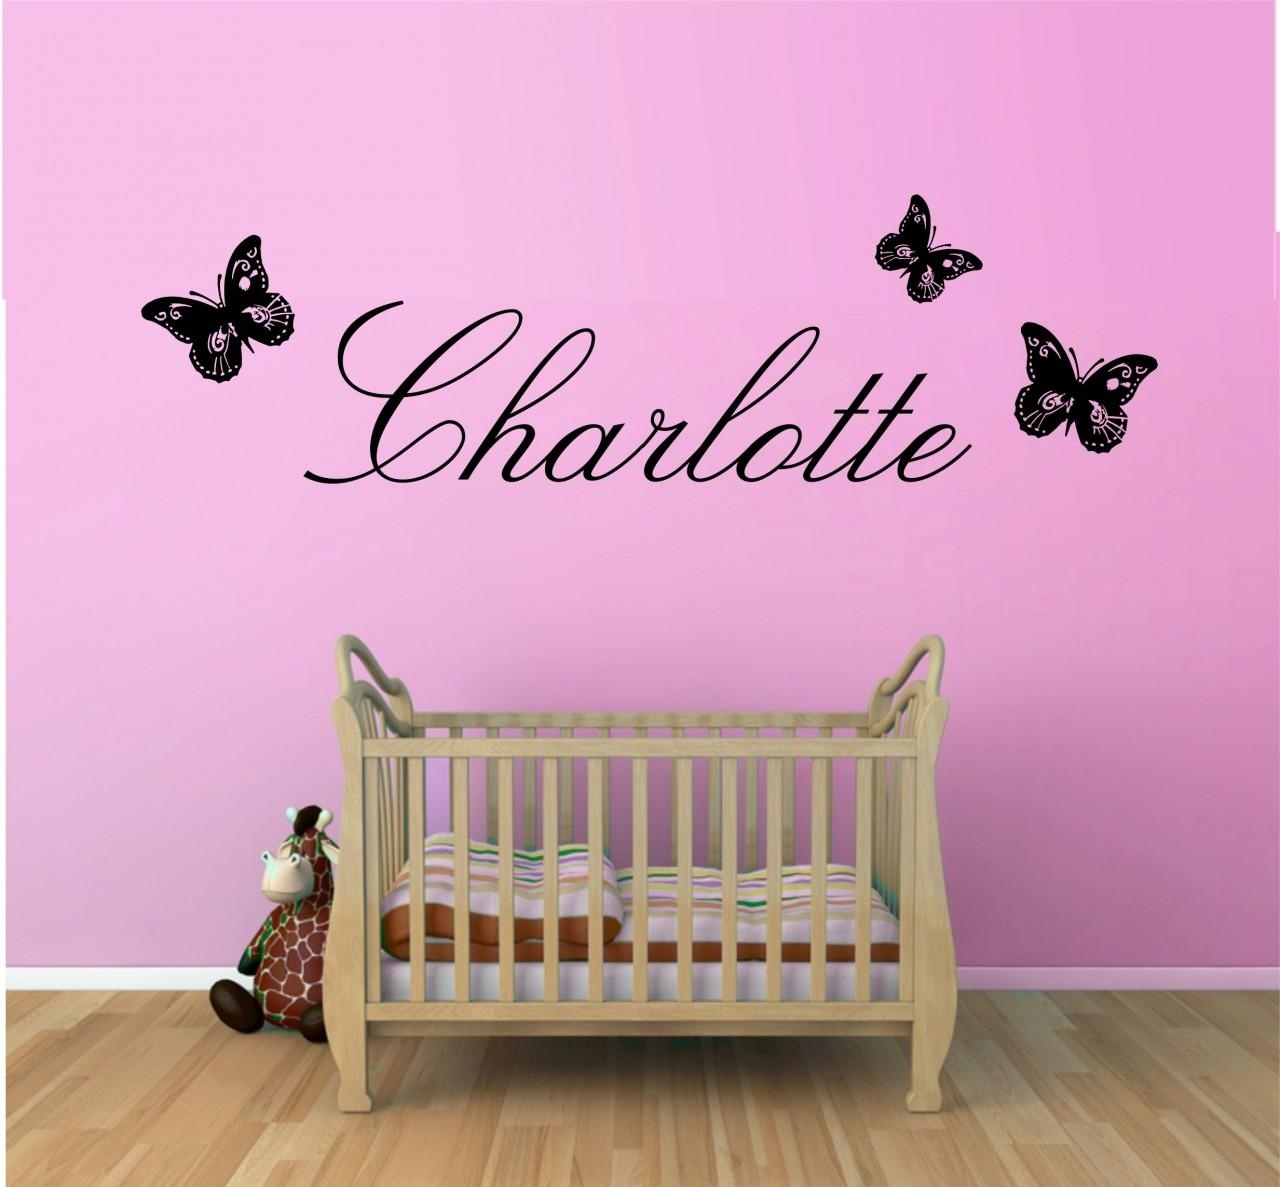 Lighten Up The Nursery With Baby Nursery Wall Decals | Amazing Throughout Butterflies Wall Art Stickers (Image 14 of 20)